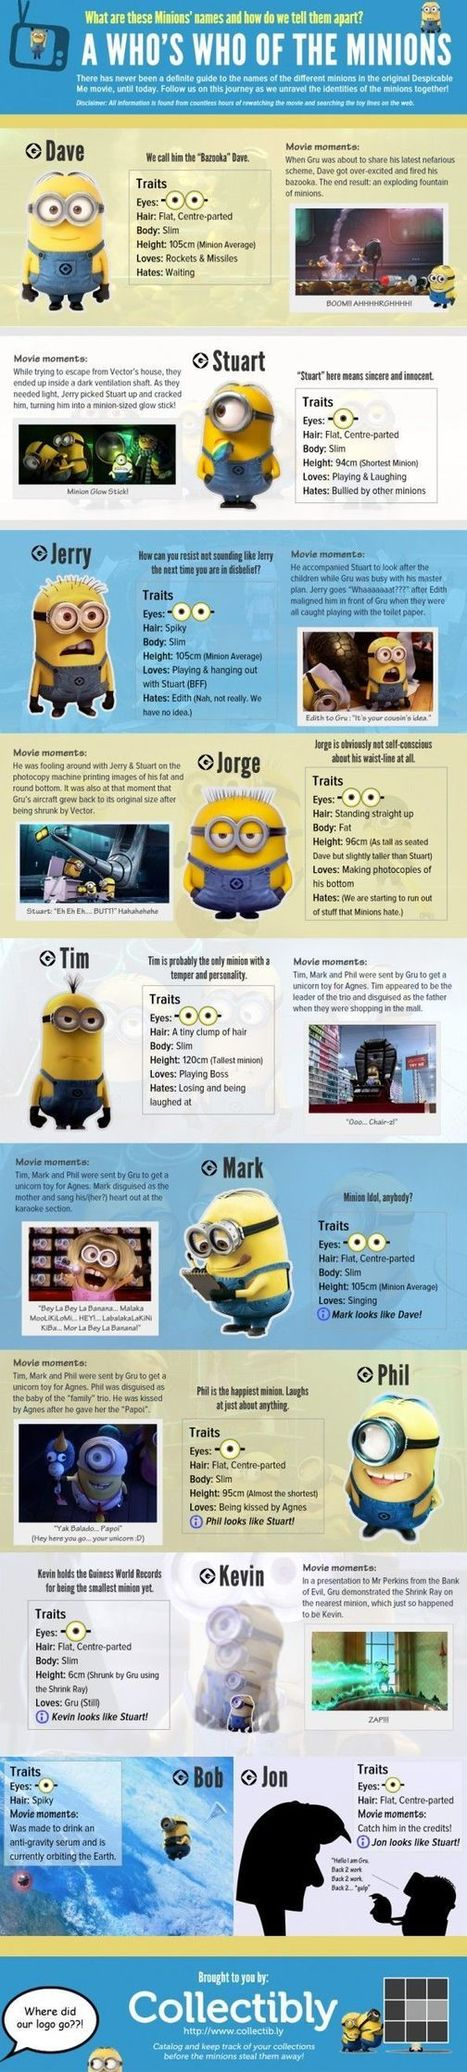 A Who's who of the minions | Amazing Infographs | Scoop.it